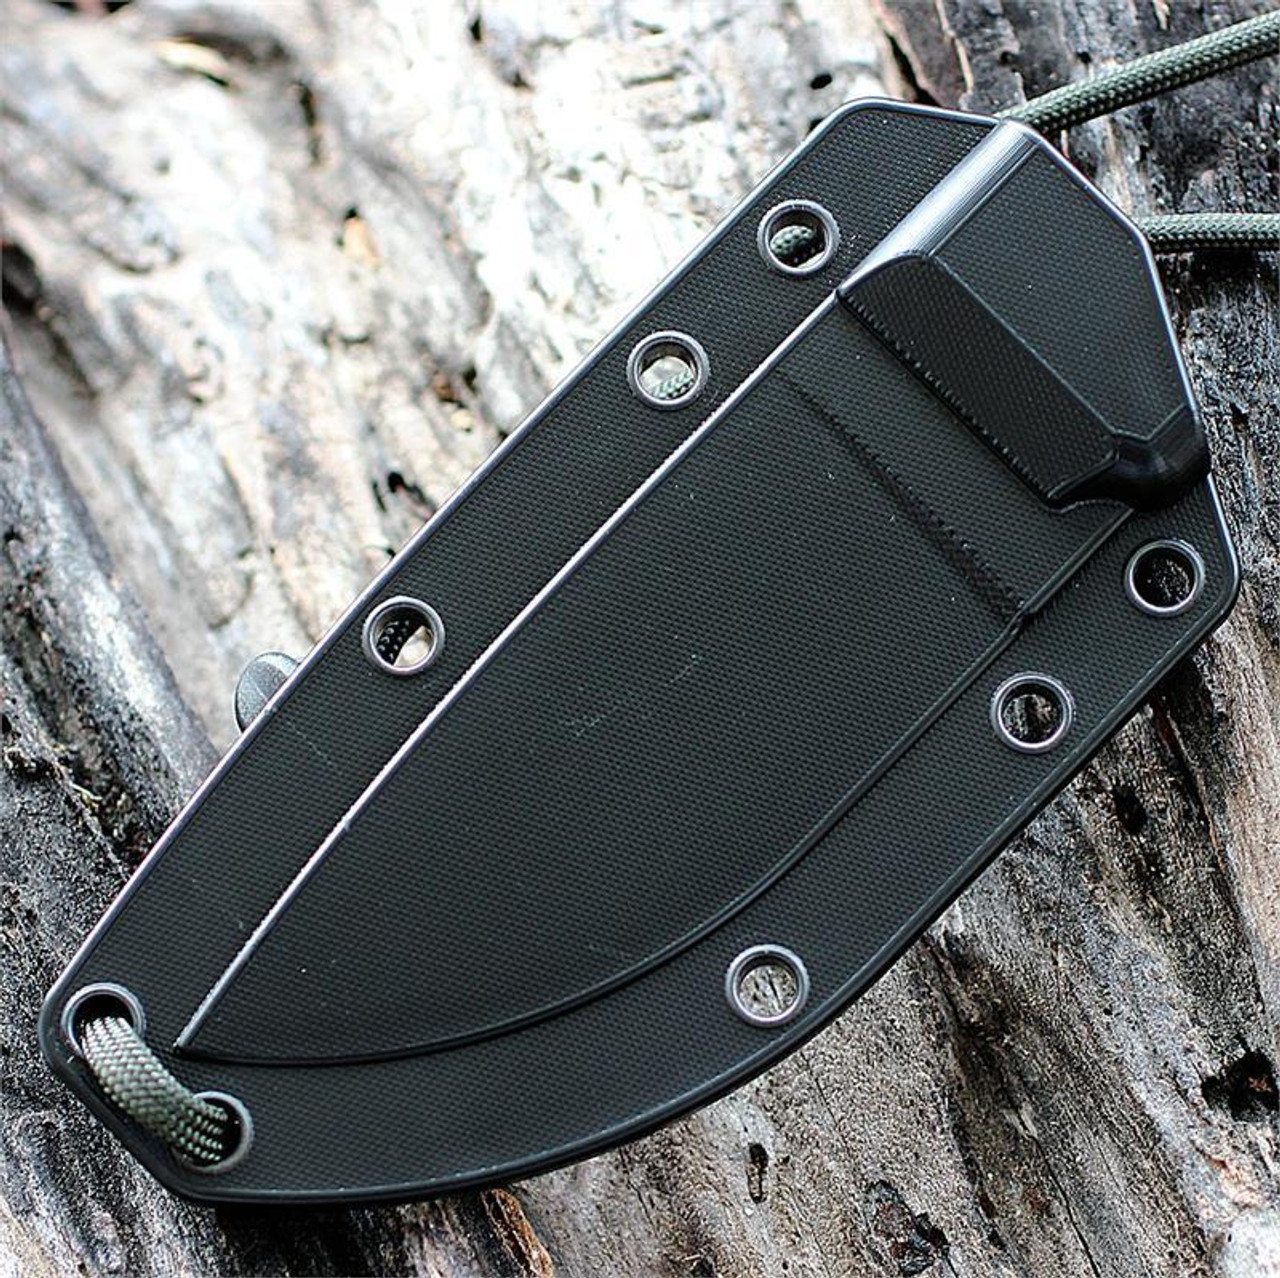 ESEE Knives, 3S-TG-B Tactical Gray Partially Serrated Edge with Black G-10 Handles and Molded Sheath-No box